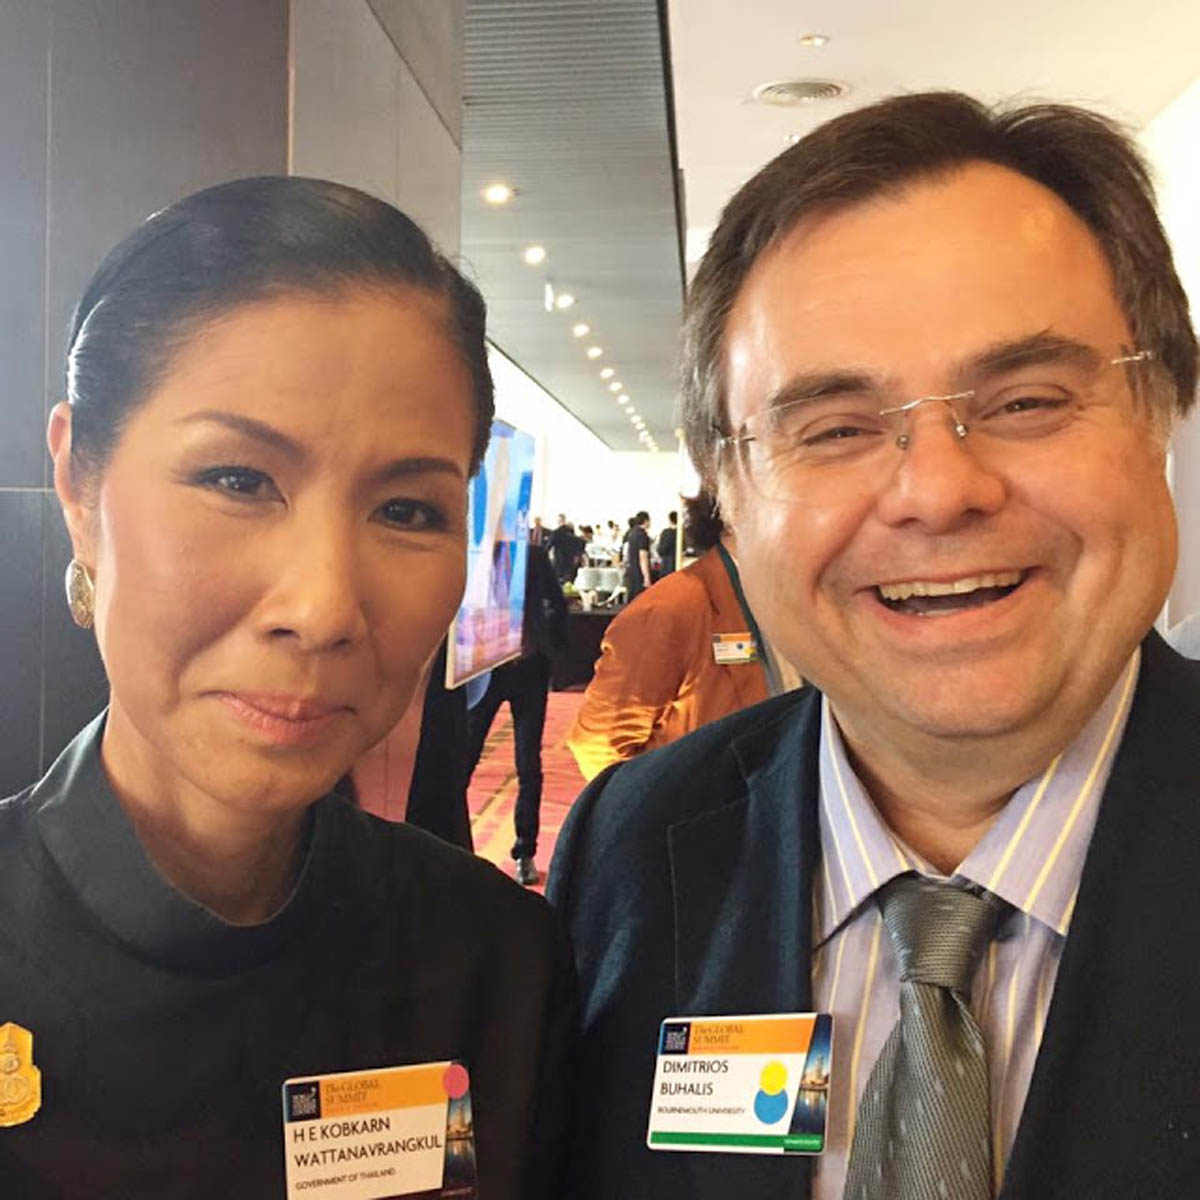 Dimitrios Buhalis with HE Kobkarn Wattanavrangkul Minister of Tourism for Thailand